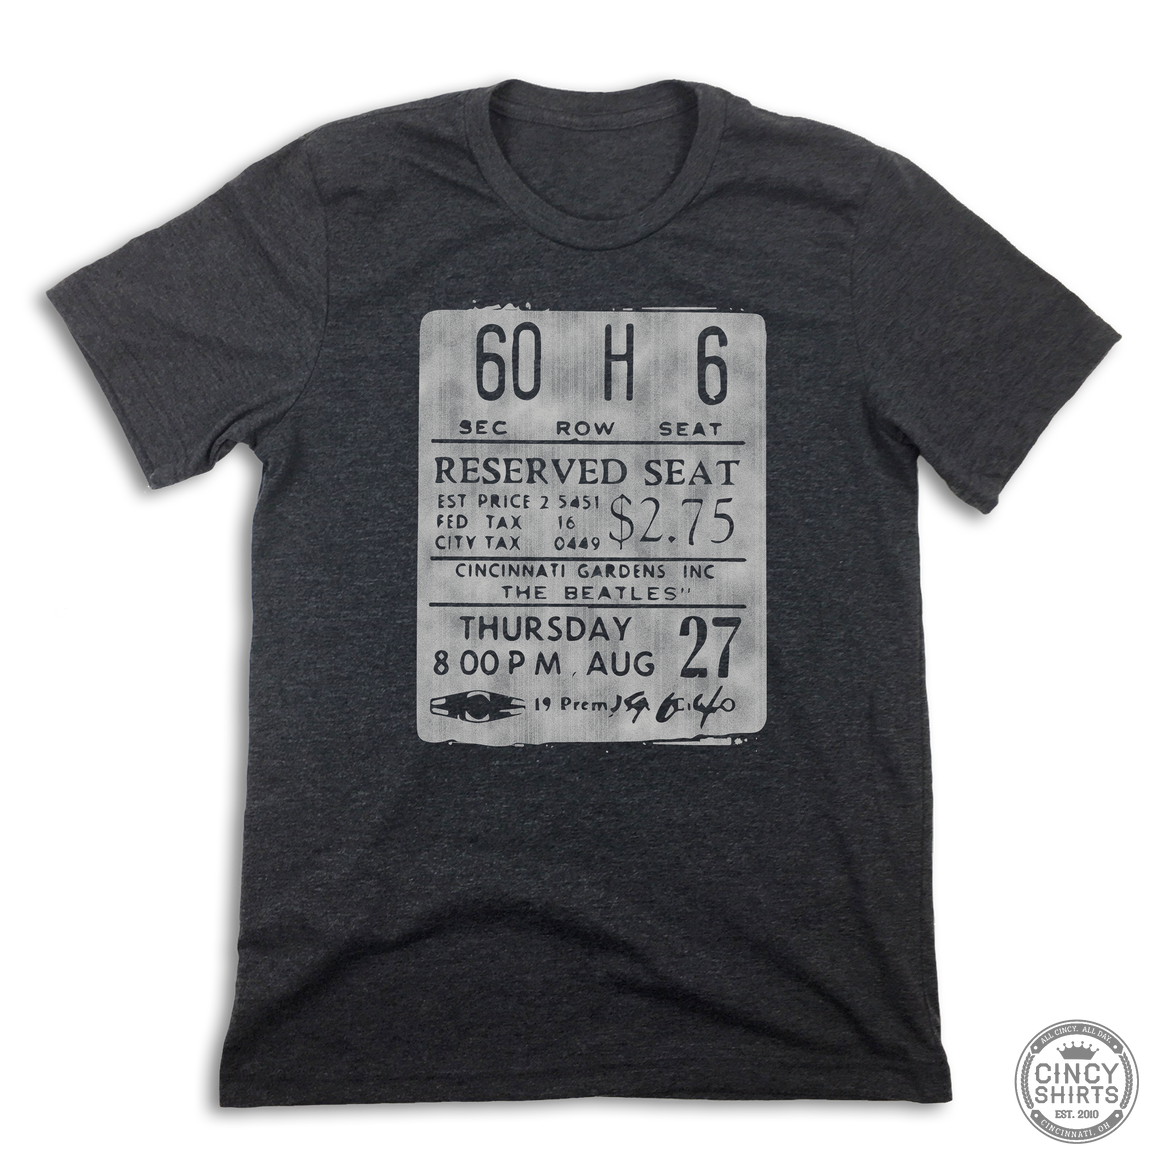 The Cincinnati Gardens Ticket Stub - Cincy Shirts